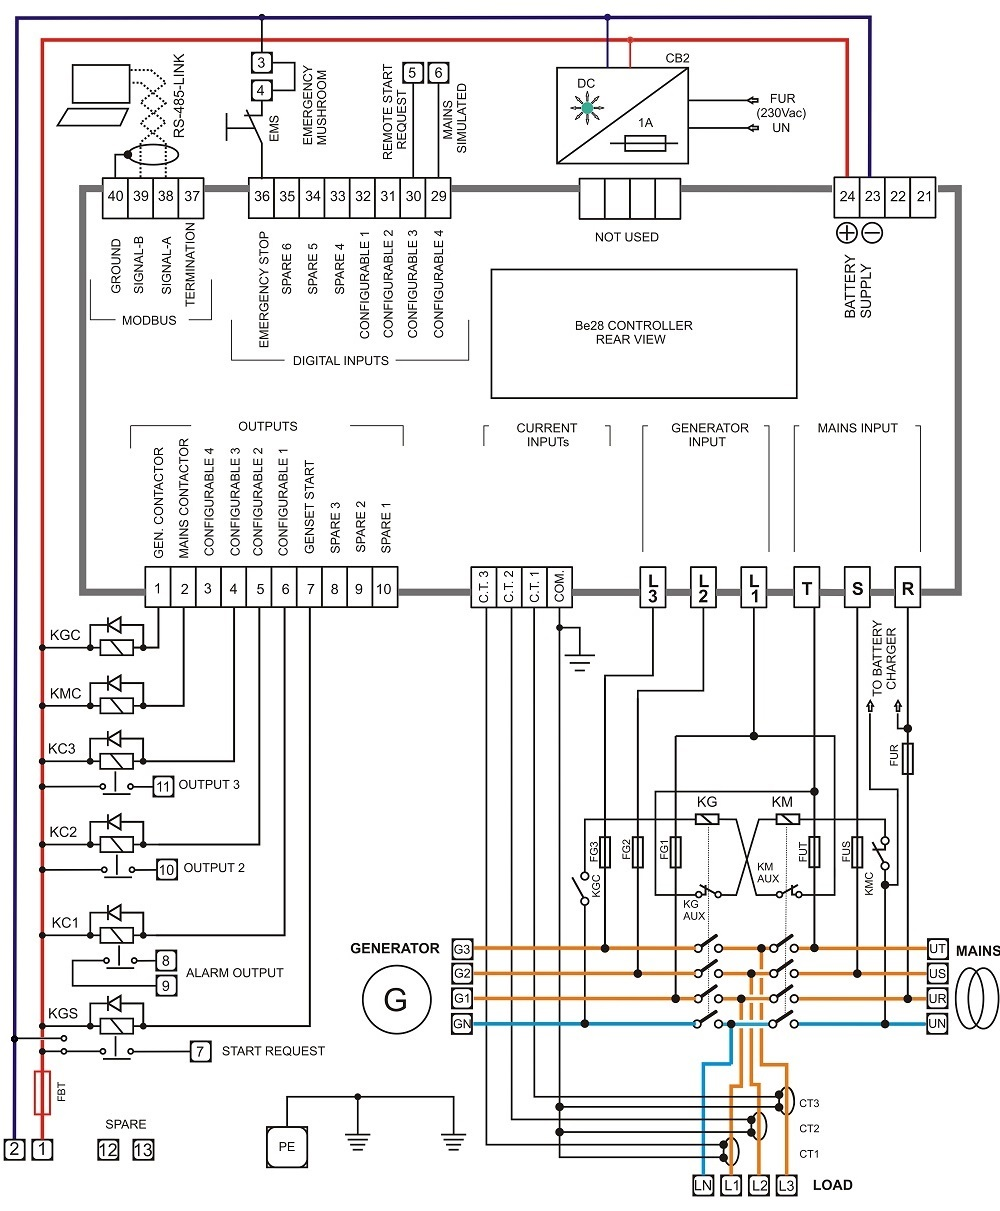 ats panel wiring diagram data wiring diagrams \u2022 wiring box diagram for roketa gk-28 at Wiring Box Diagram